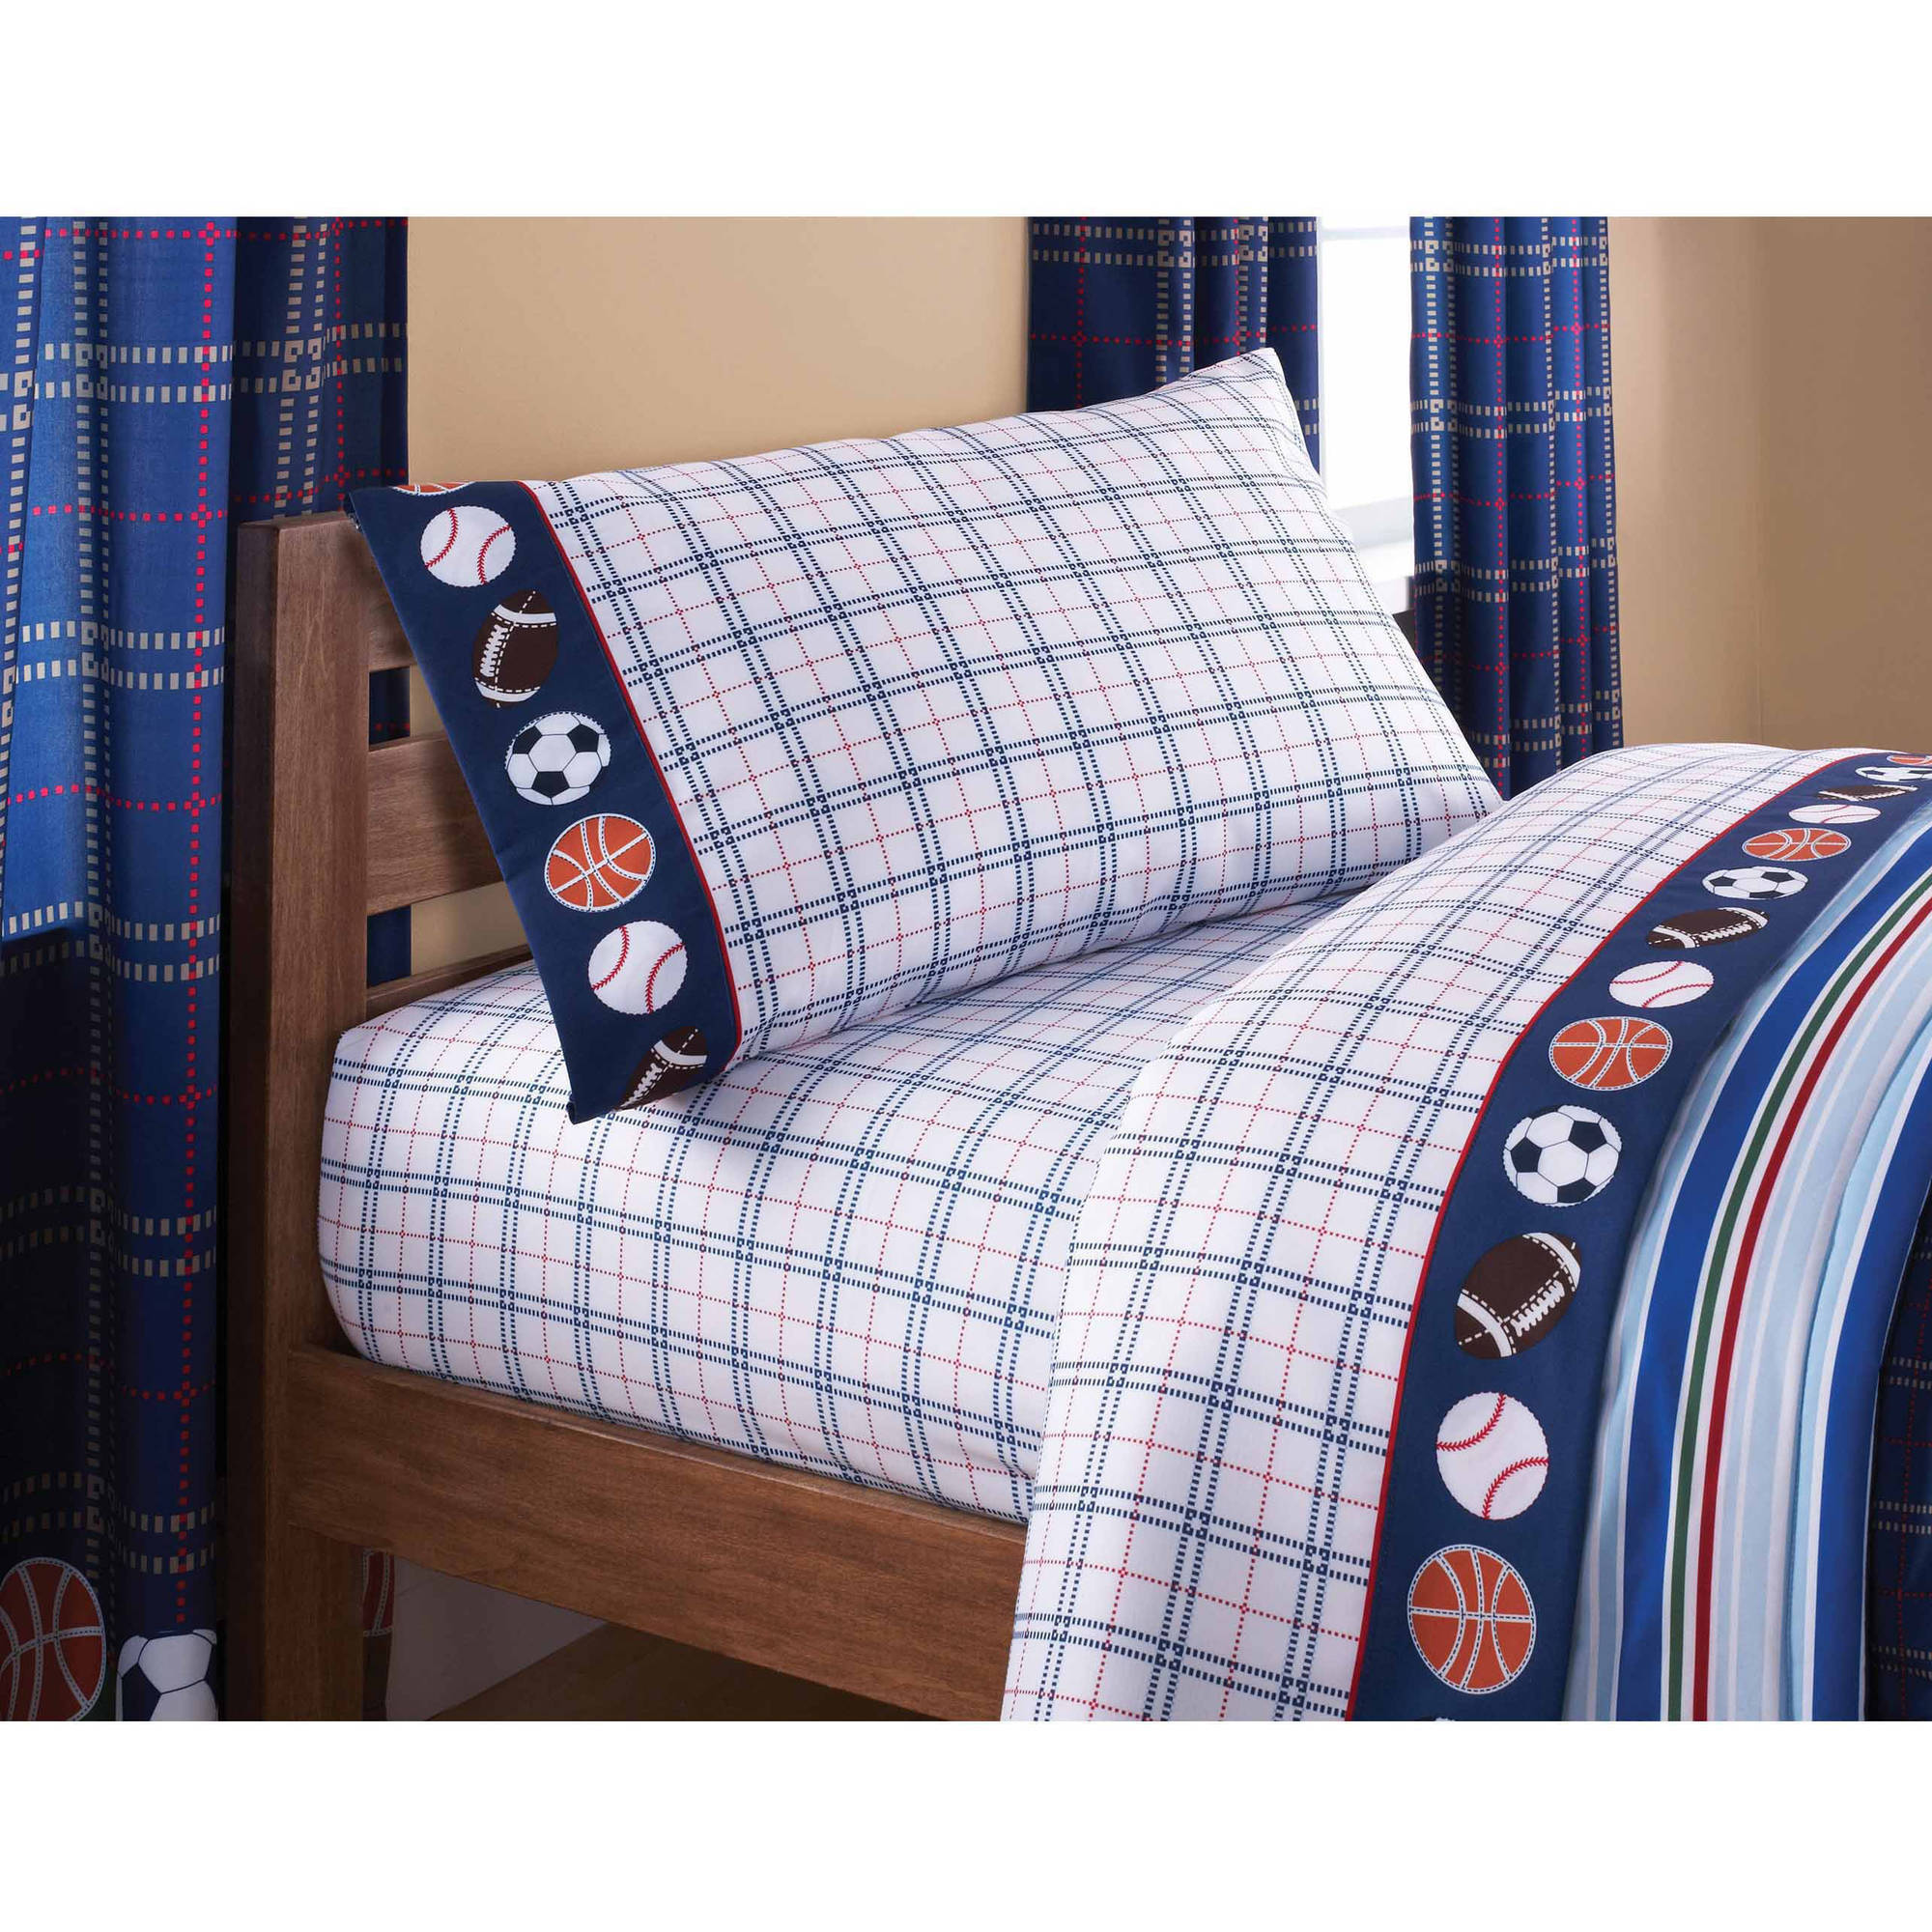 Mainstays Kids Sheet Set